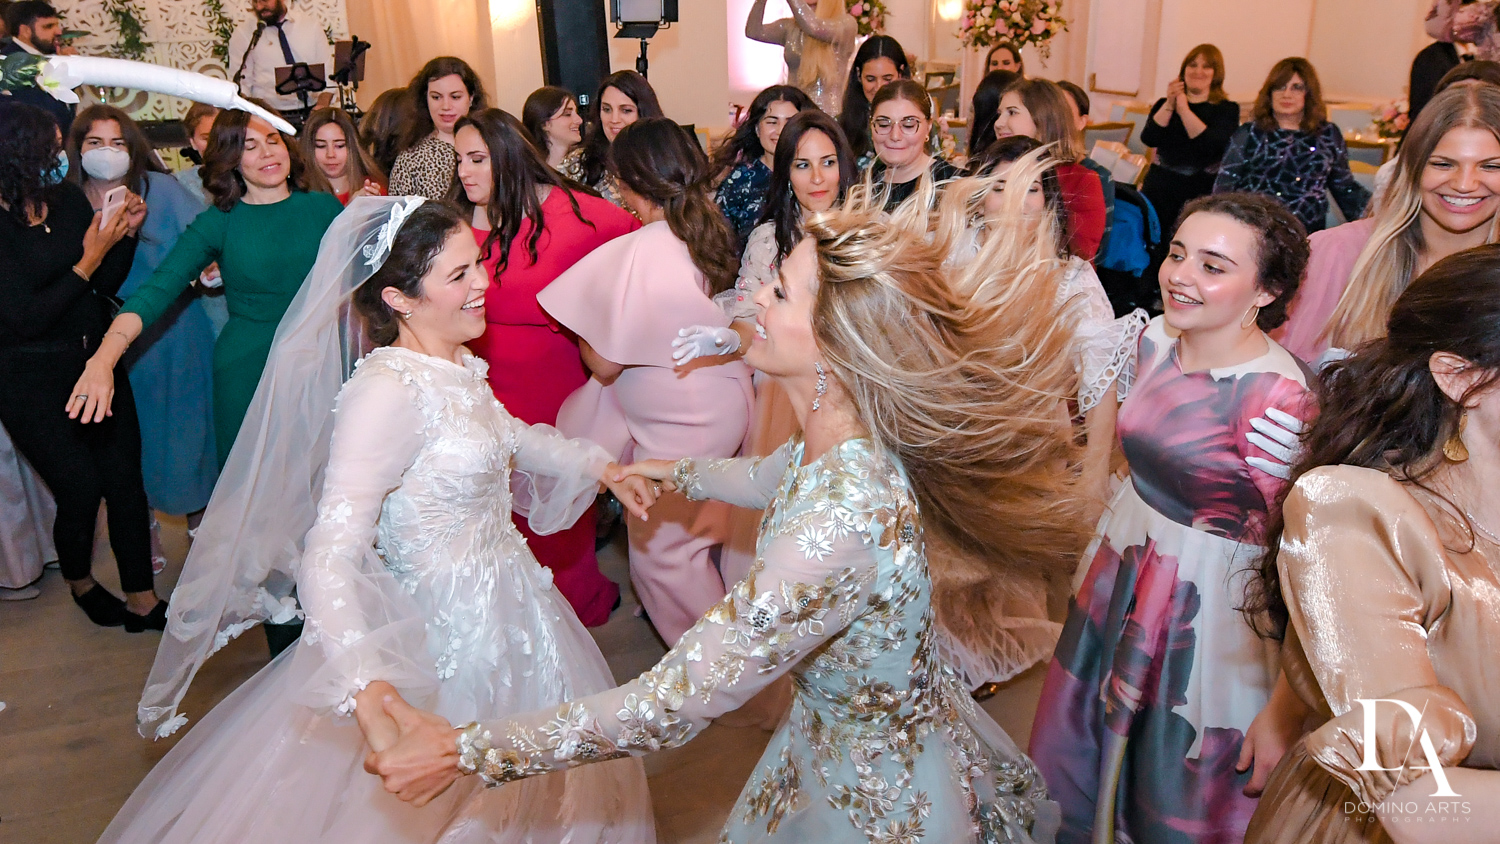 traditional dancing at Jewish Orthodox Wedding in Palm Beach by Domino Arts Photography